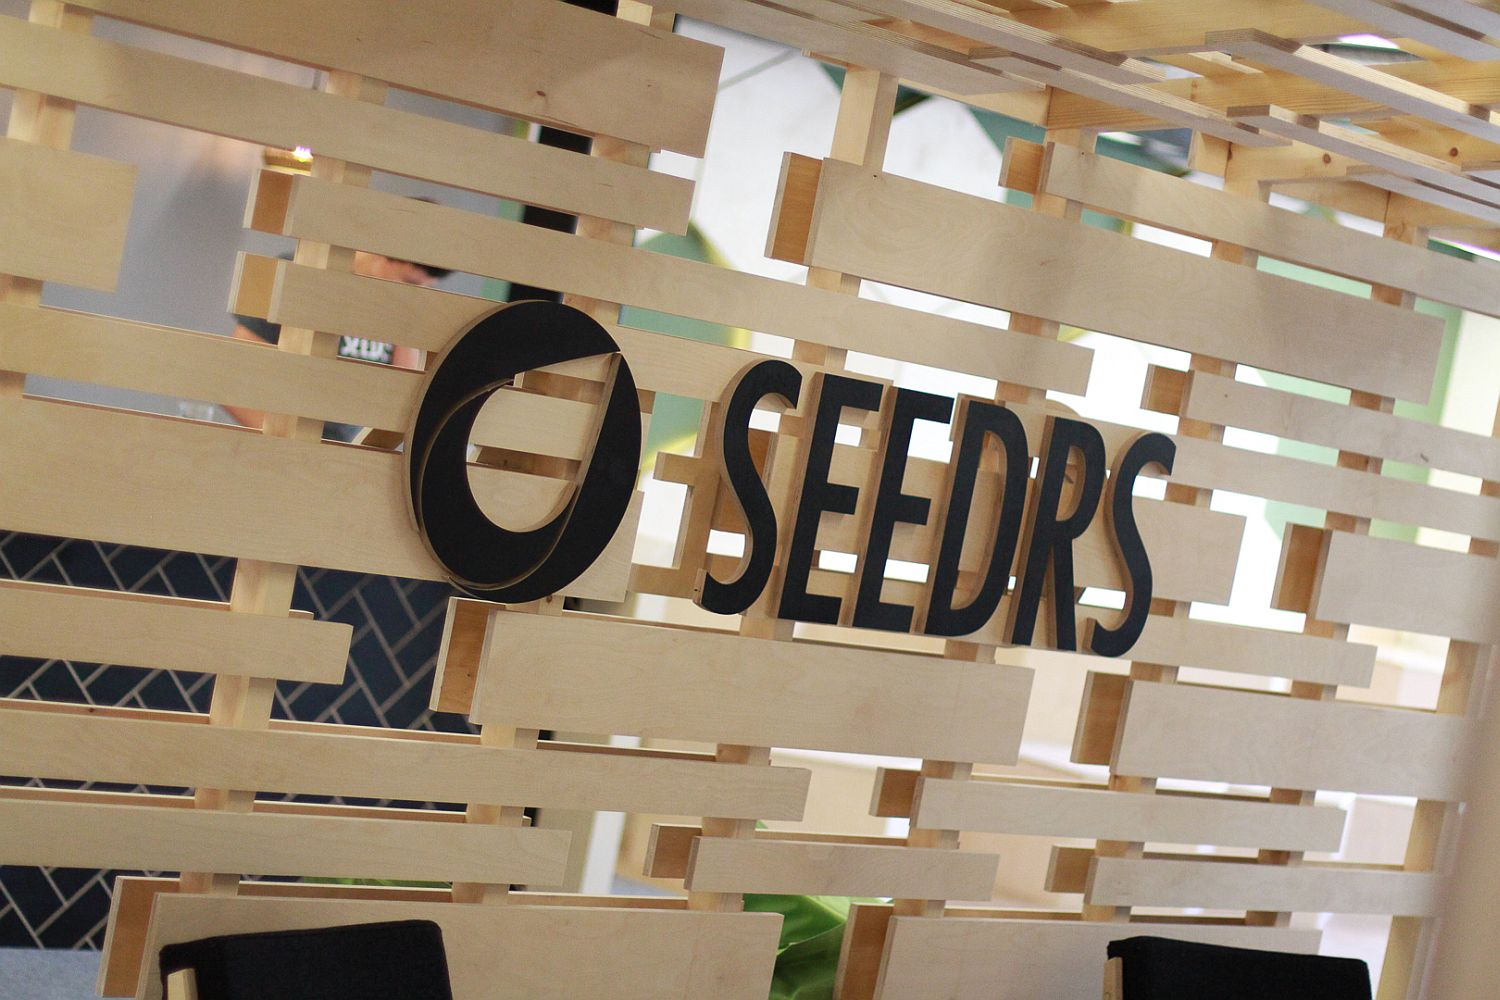 London based equity firm Seedrs gets a grand new office with a fascinating interior